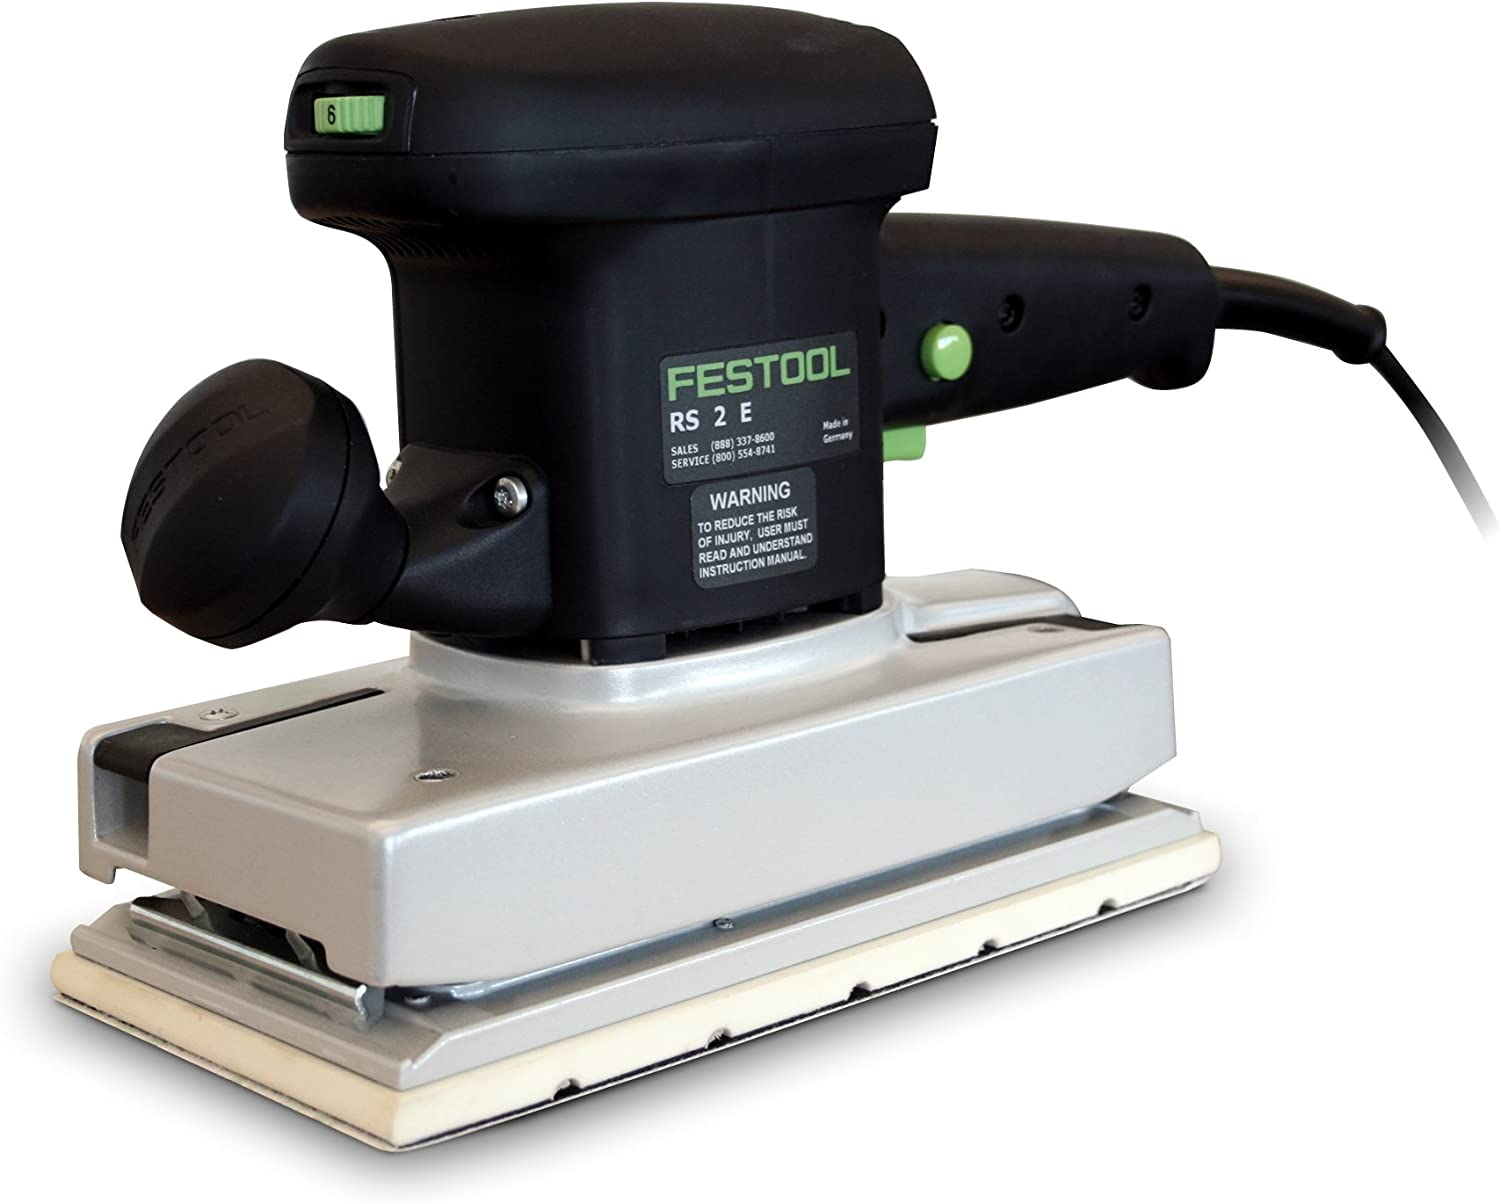 Festool RS 2 E featured image